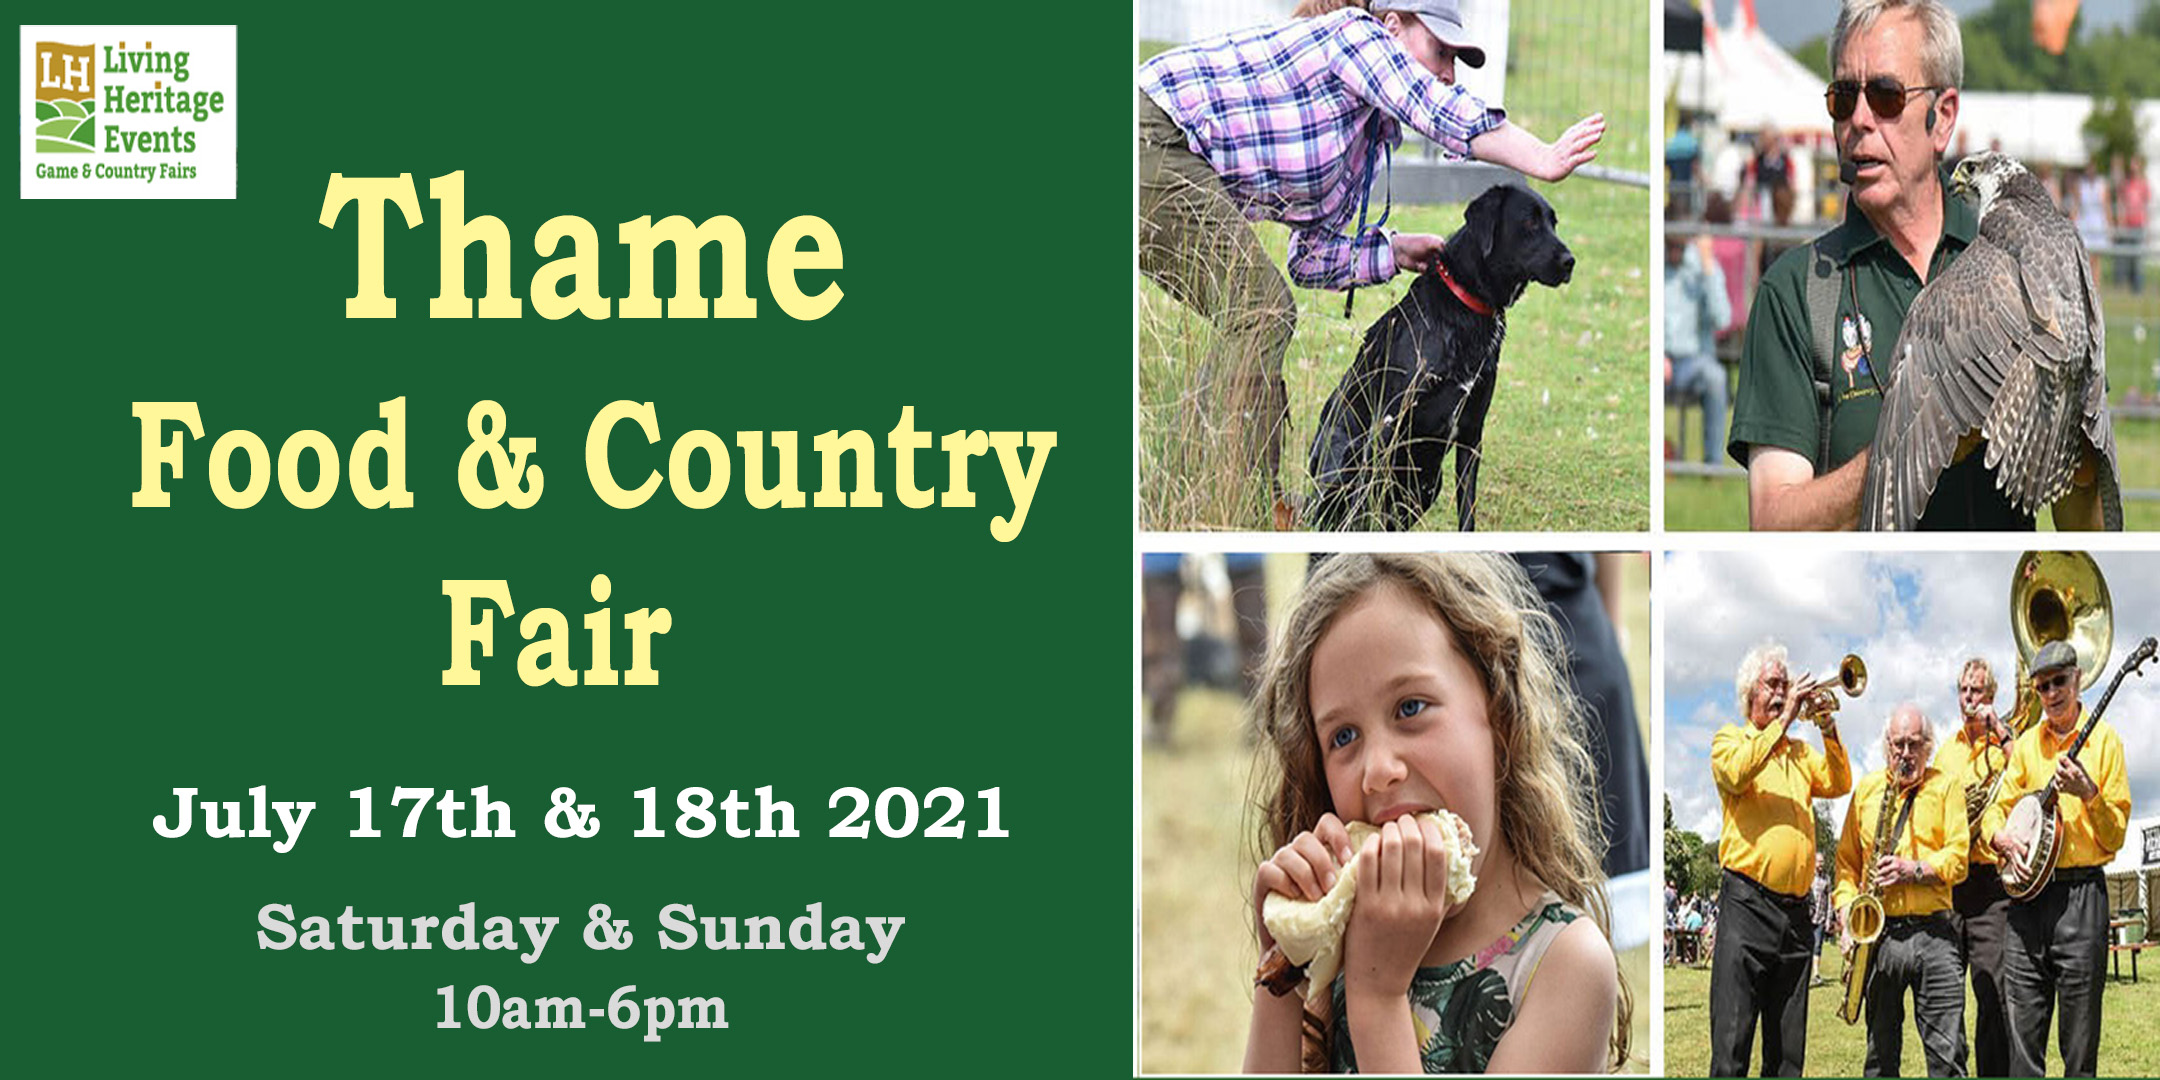 Thame Food and Country Fair